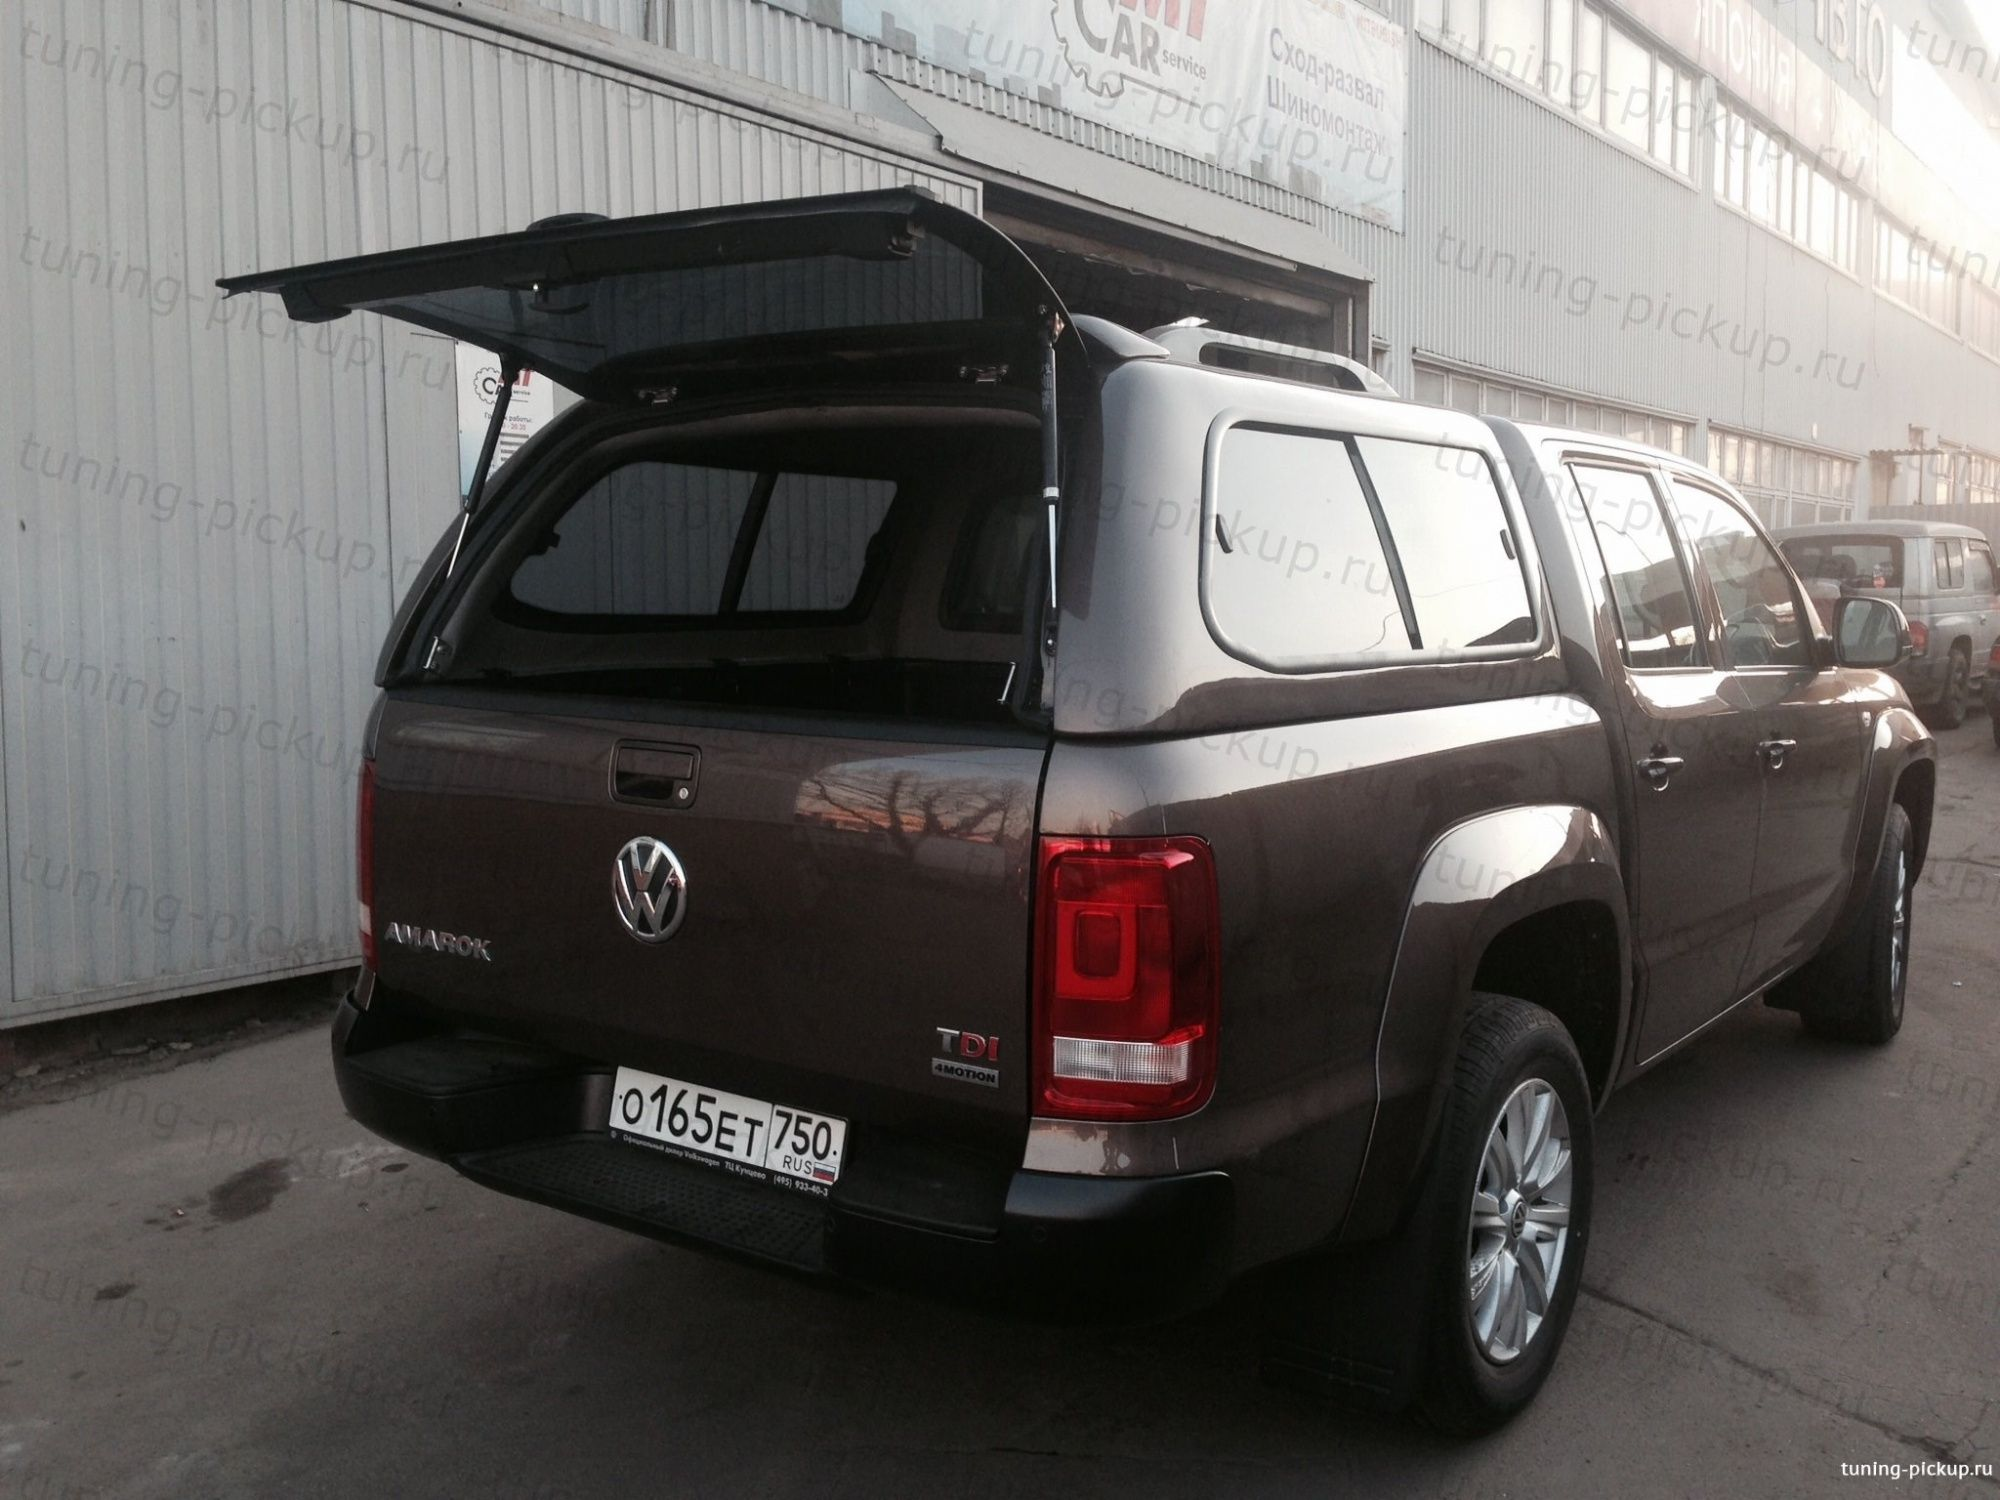 Кунг S1 Side Access  - Volkswagen Amarok - Кунги